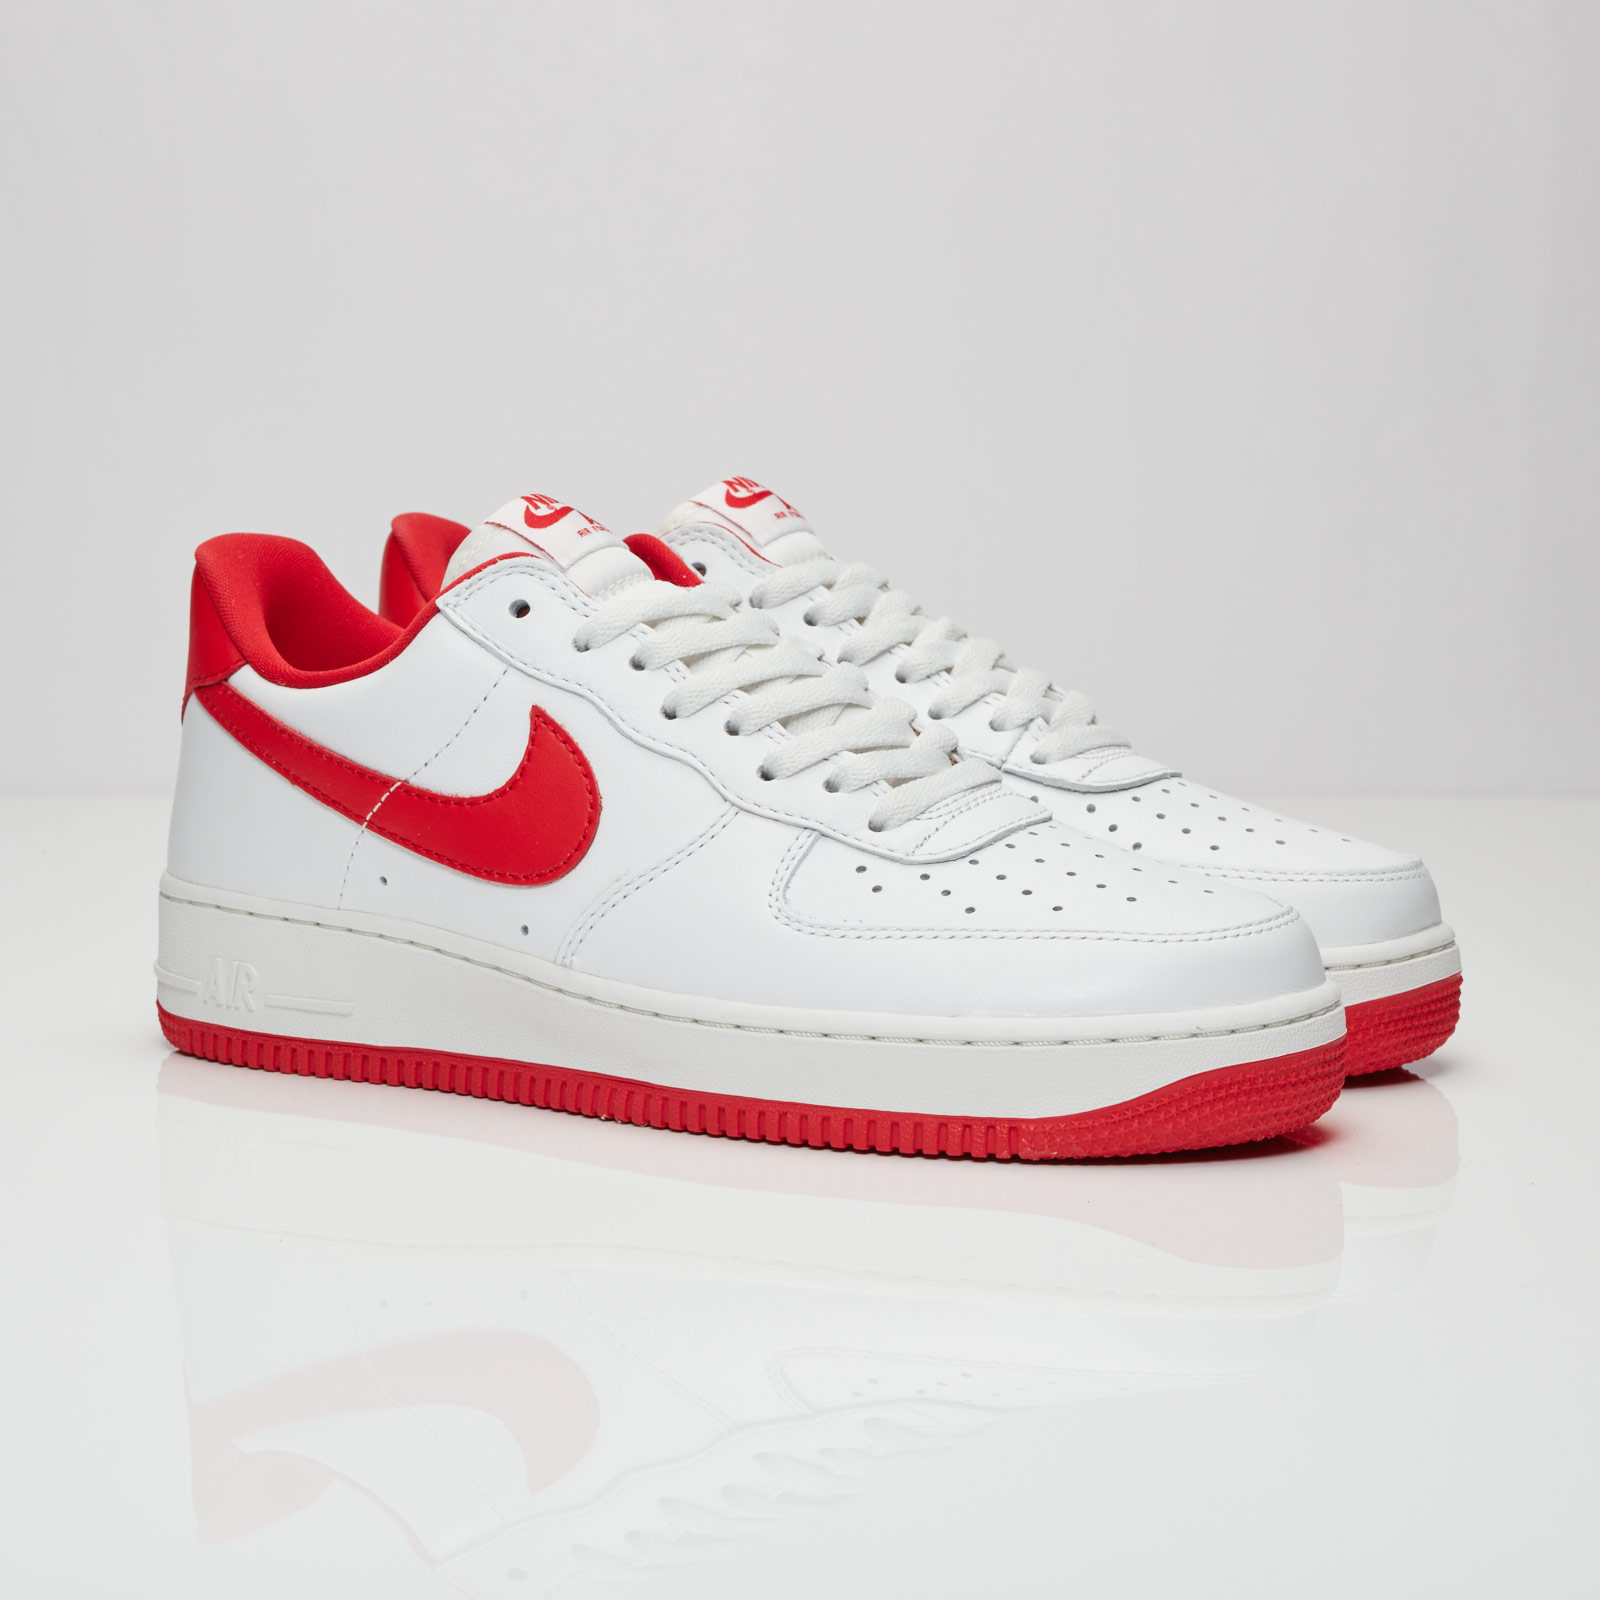 004c6a9d Nike Air Force 1 Low Retro - 845053-100 - Sneakersnstuff | sneakers ...